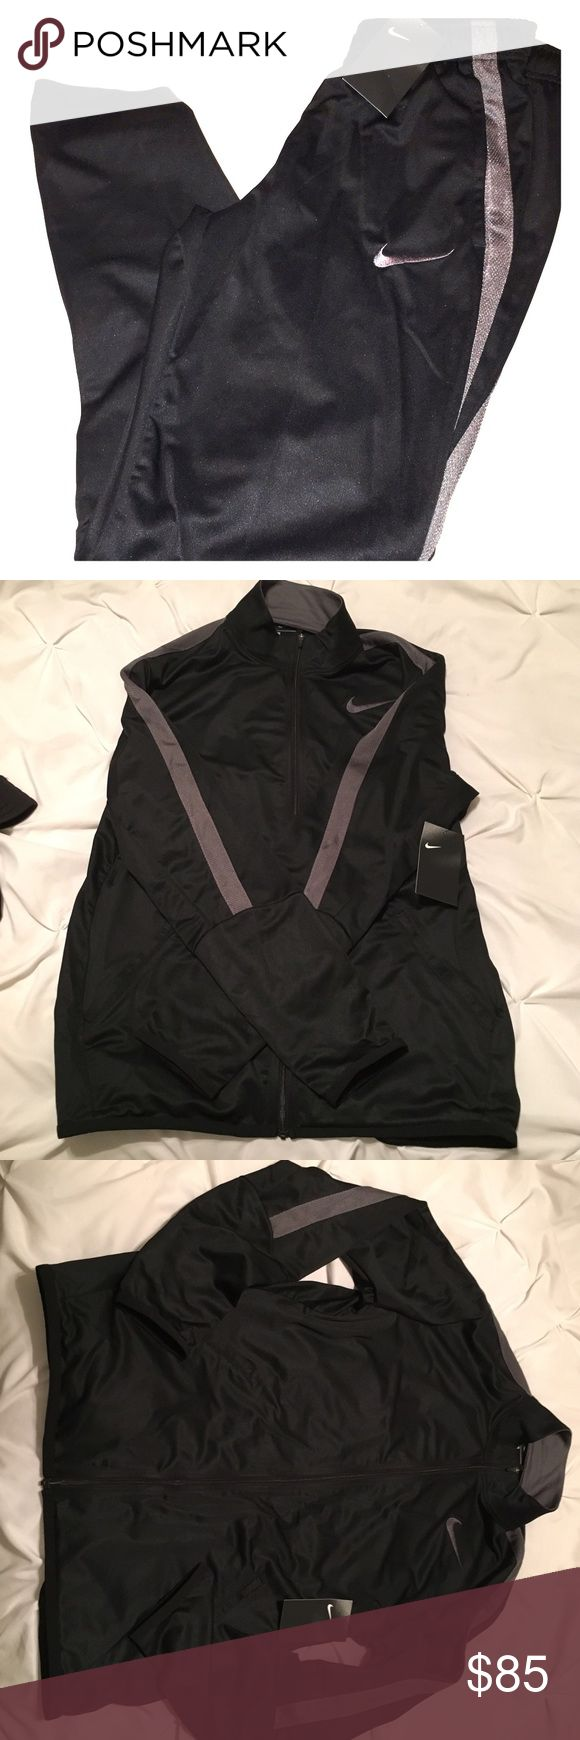 Men's Nike sweatsuit Brand new Black and grey never been worn Nike sweatsuit still has tags the jacket is a men's size medium and the bottoms are a men's size small Nike Other